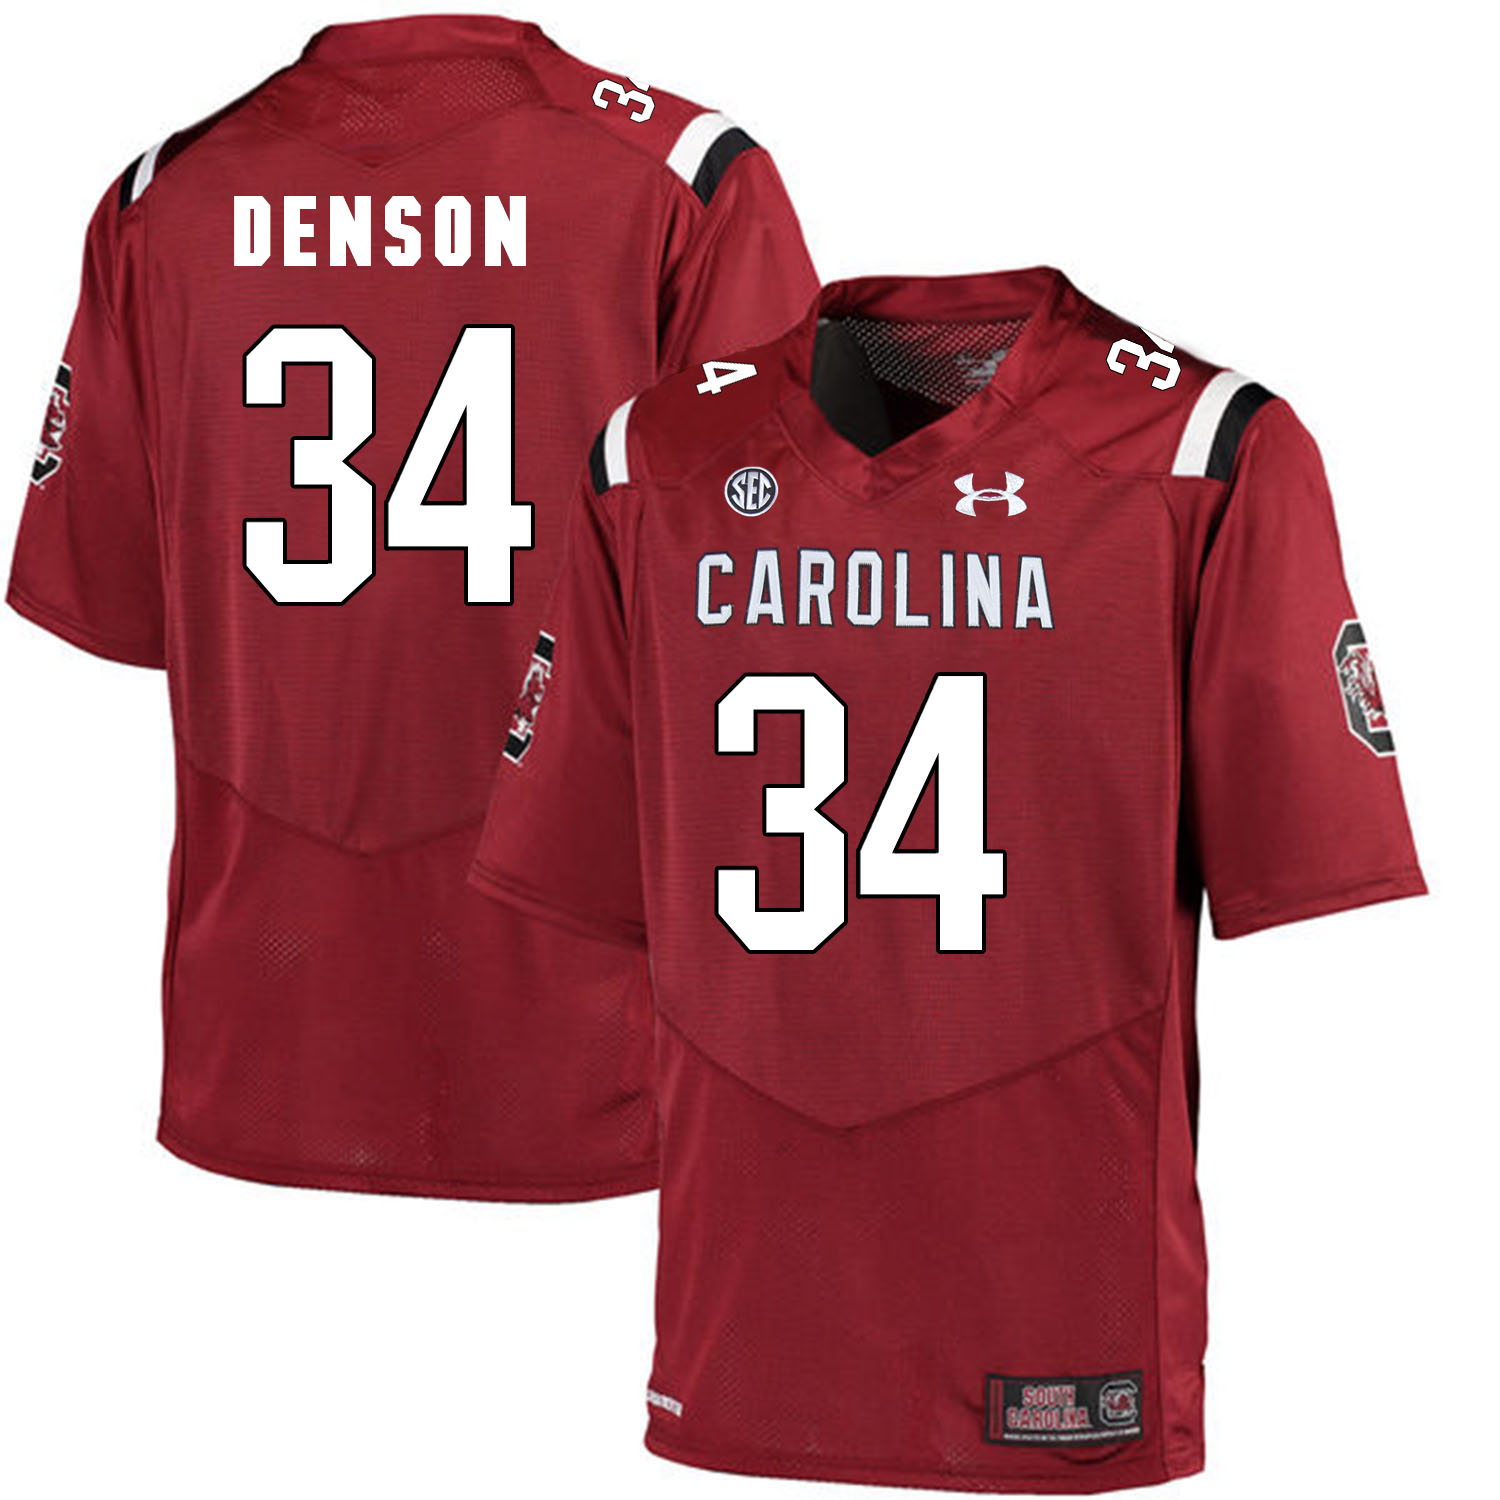 South Carolina Gamecocks 34 Mon Denson Red College Football Jersey